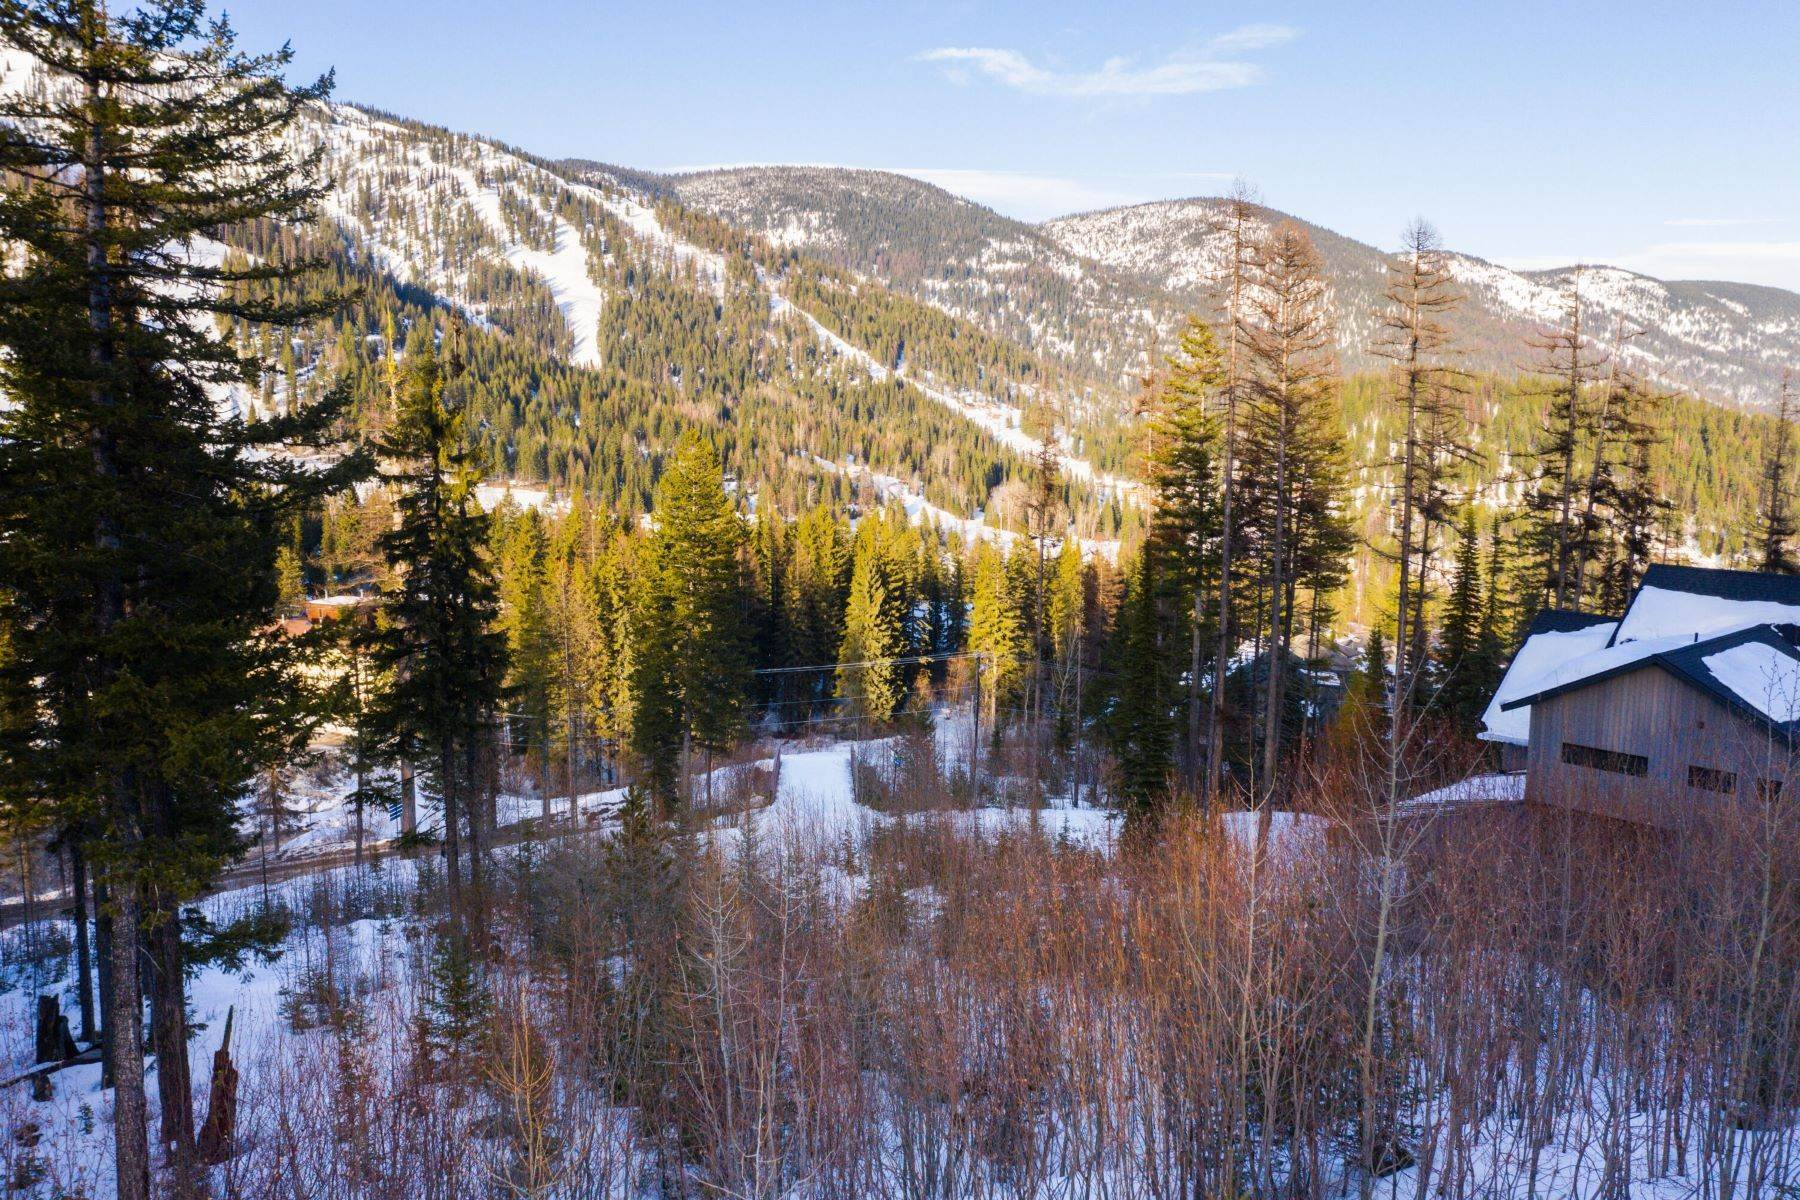 Property for Sale at Spectacular Ski in/Ski Out Custom Home Opportunity 158 Ridge Run Drive Whitefish, Montana 59937 United States